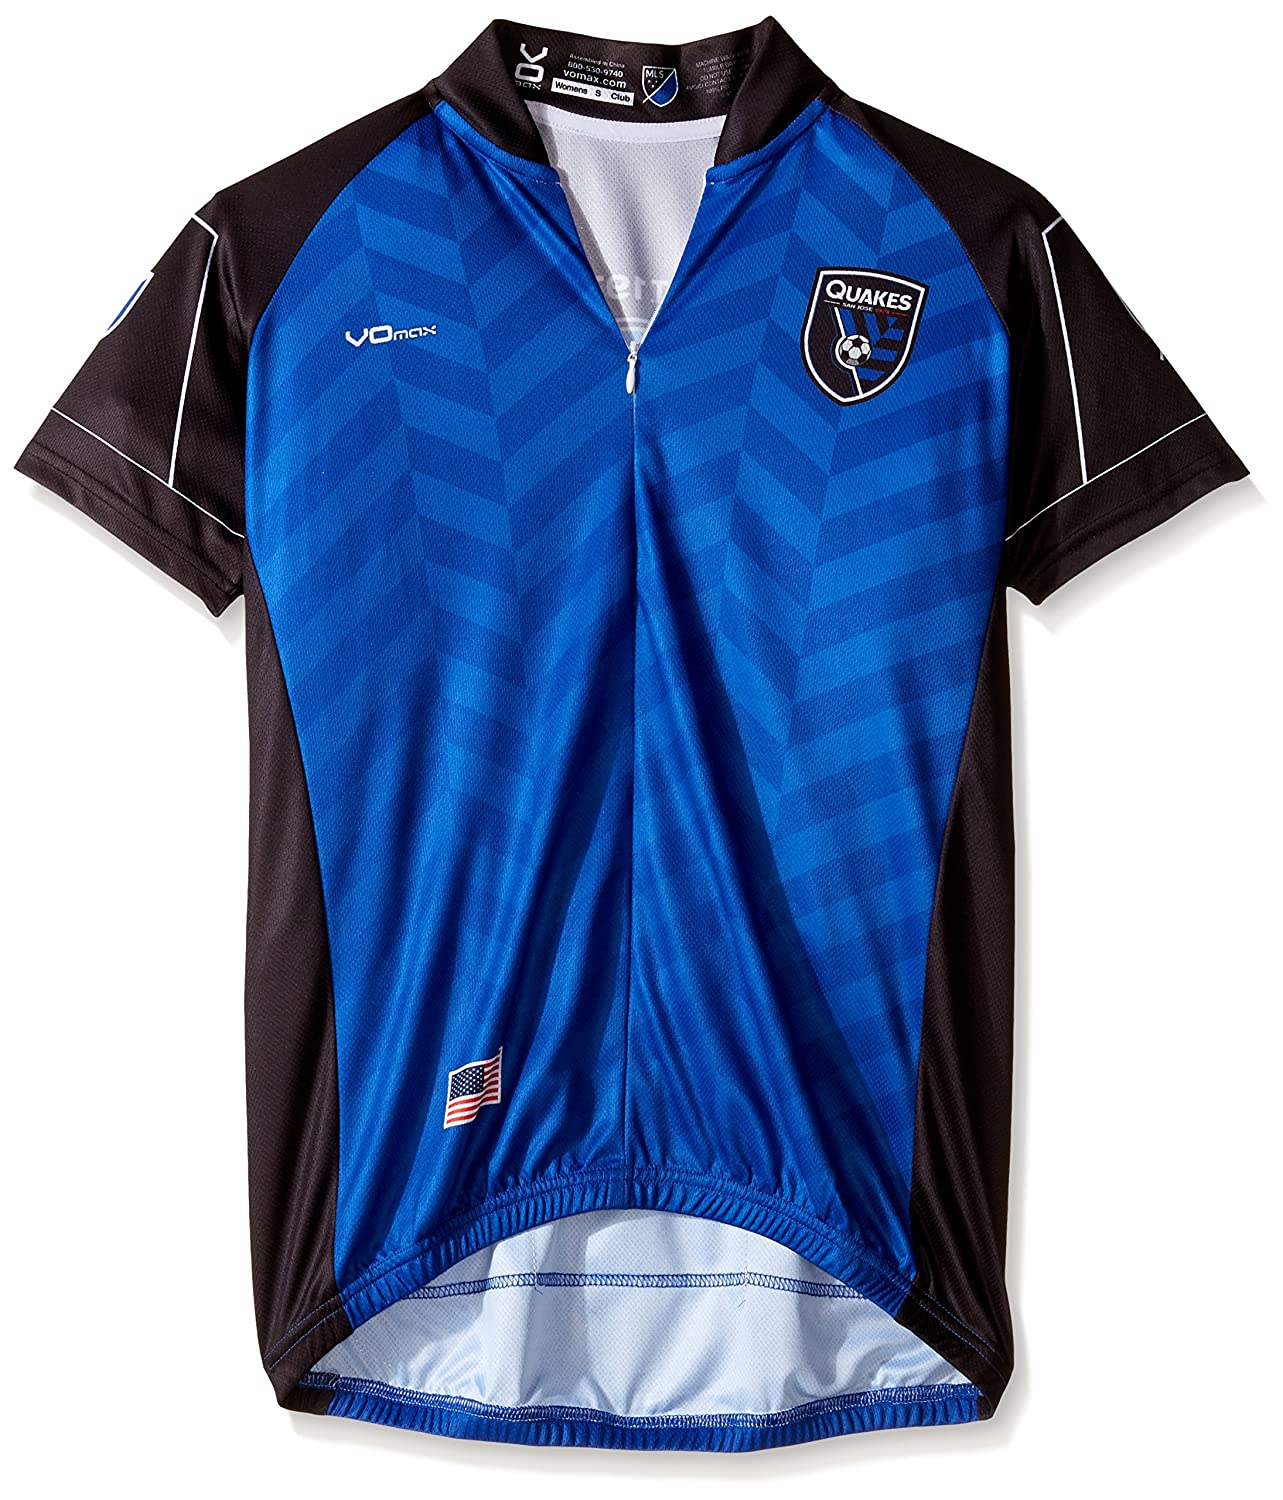 half off 058f2 422f4 Amazon.com : VOmax San Jose Earthquakes Primary Short Sleeve ...